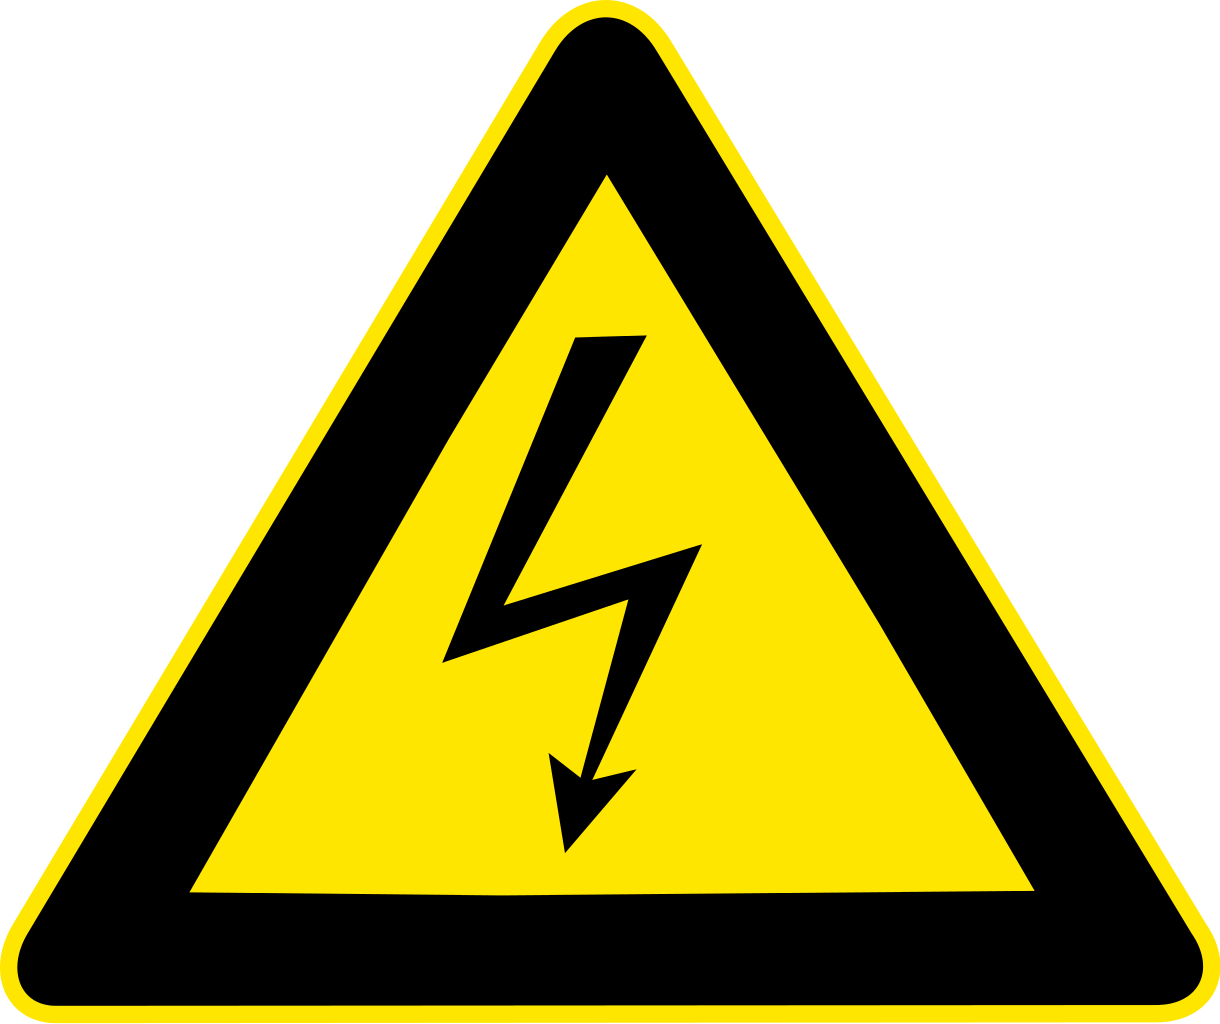 Voltage png images free. Tower clipart high tension